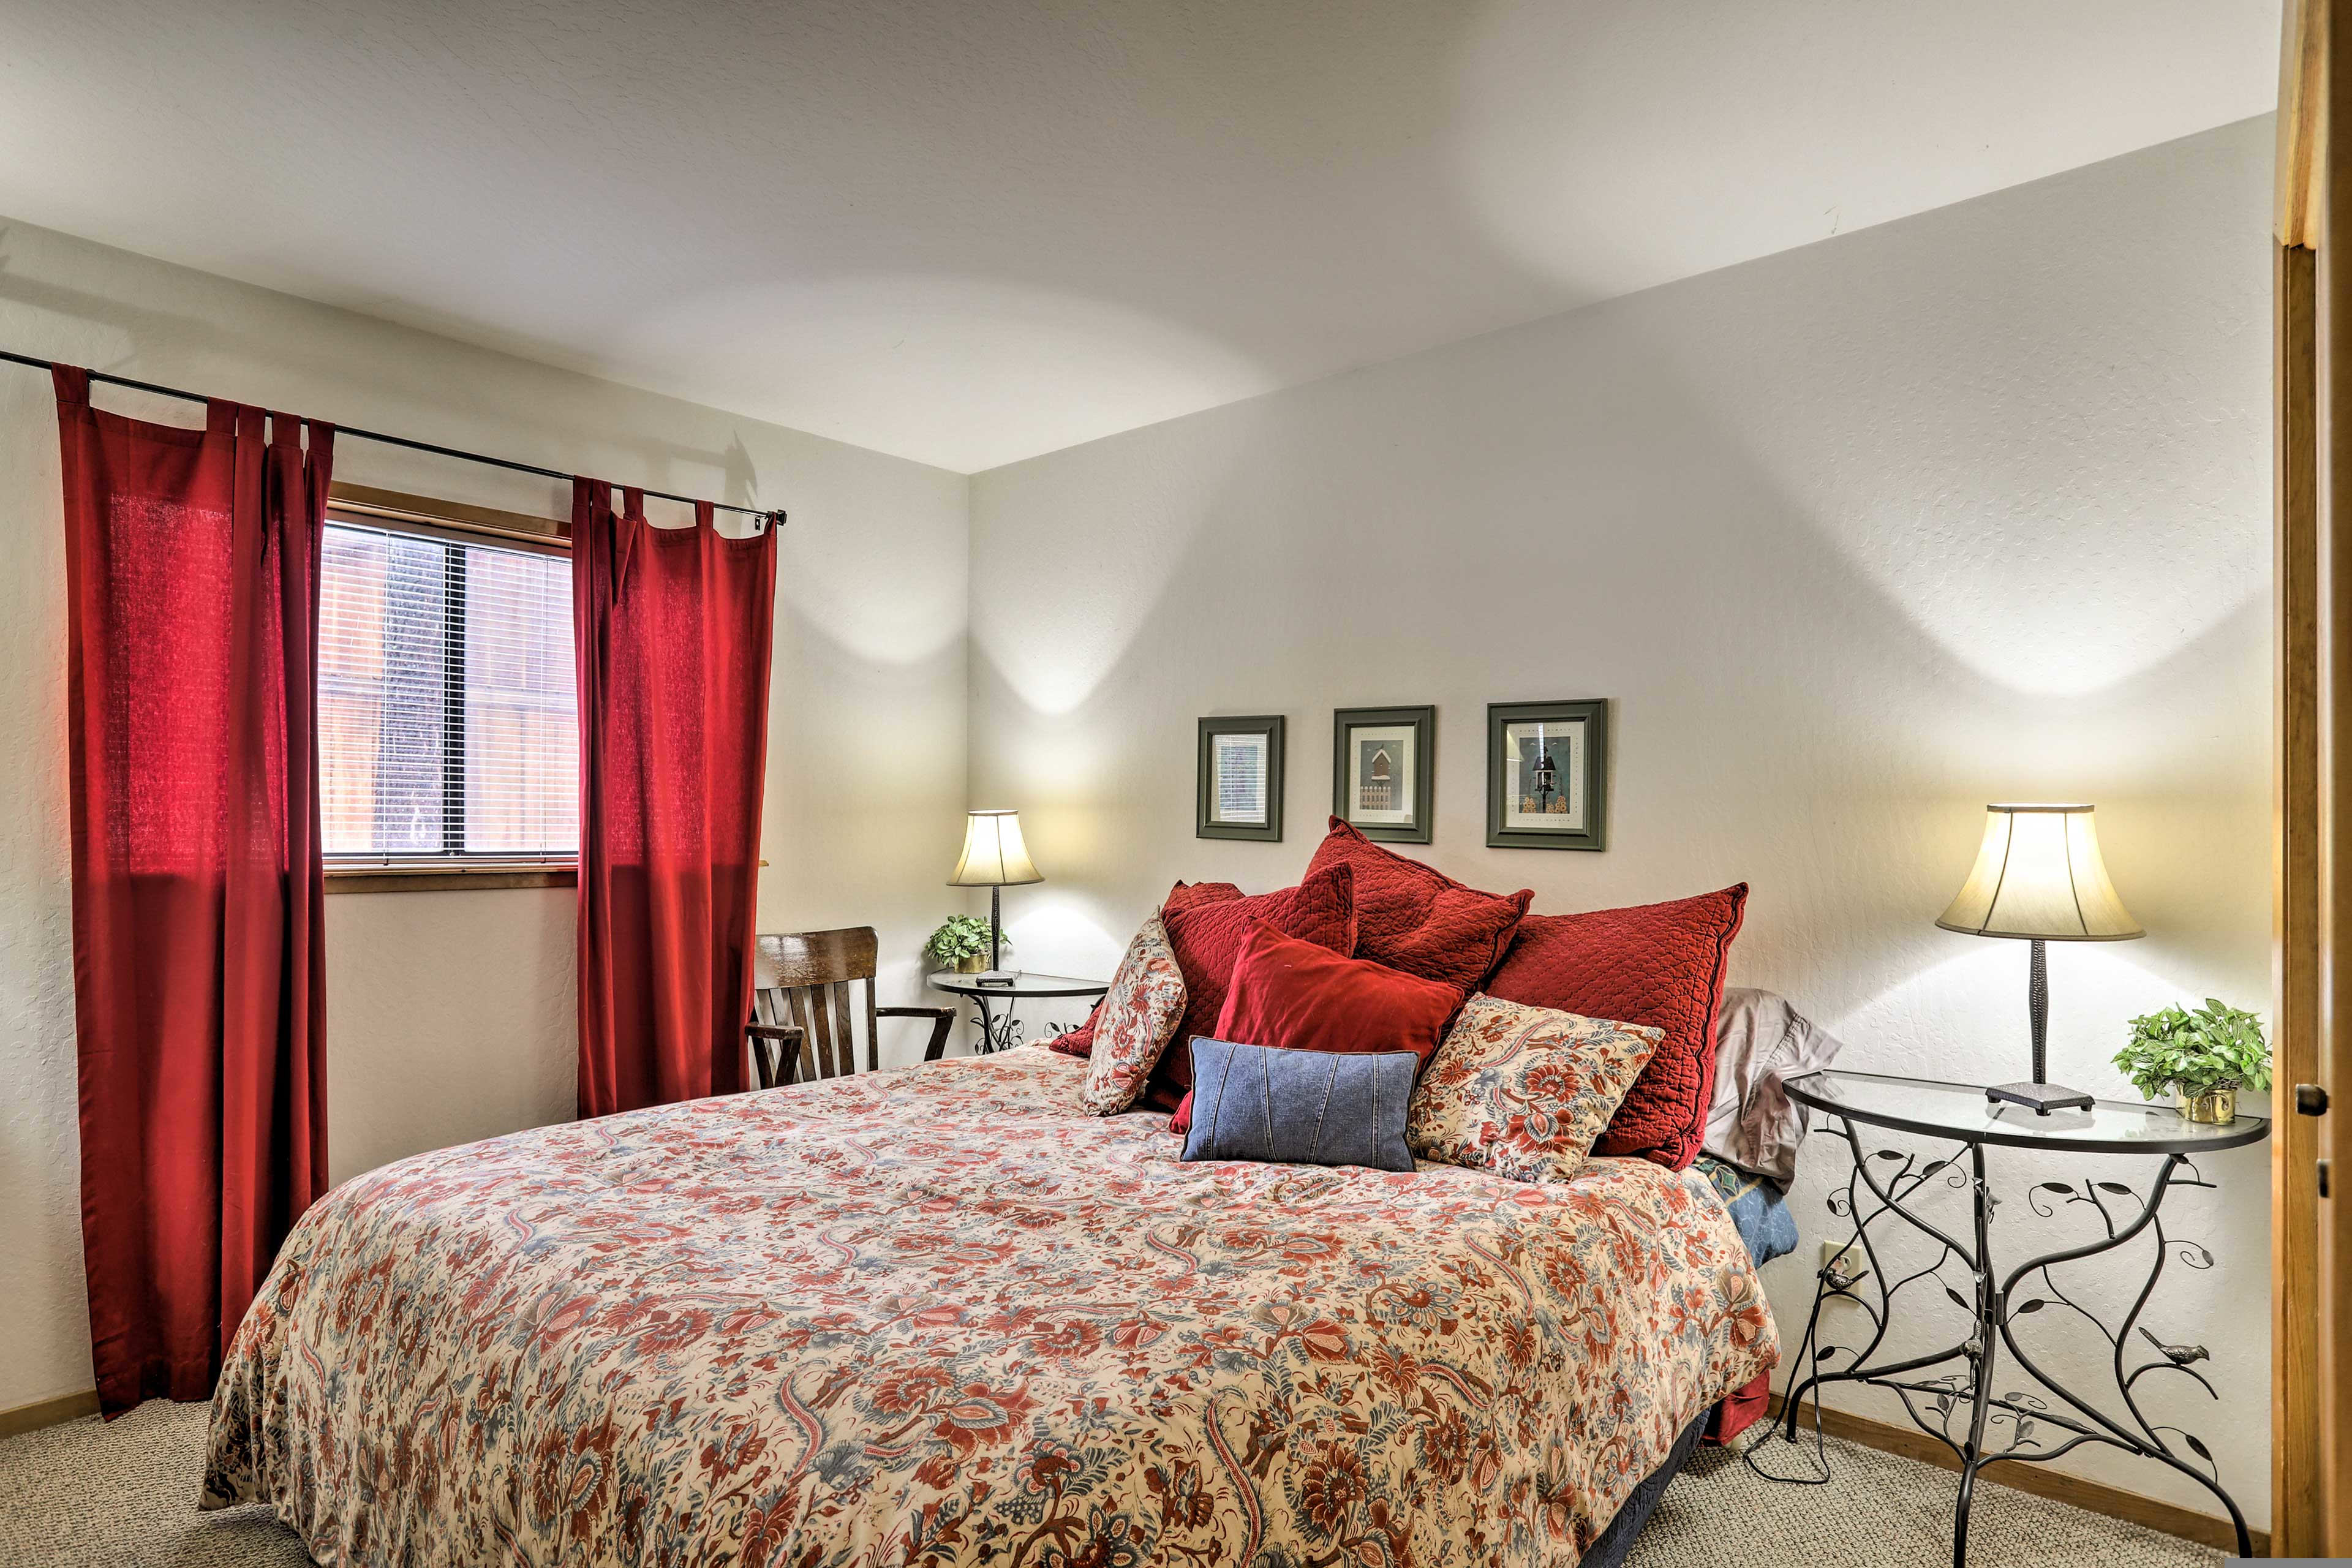 The first bedroom features a beautiful California King bed.